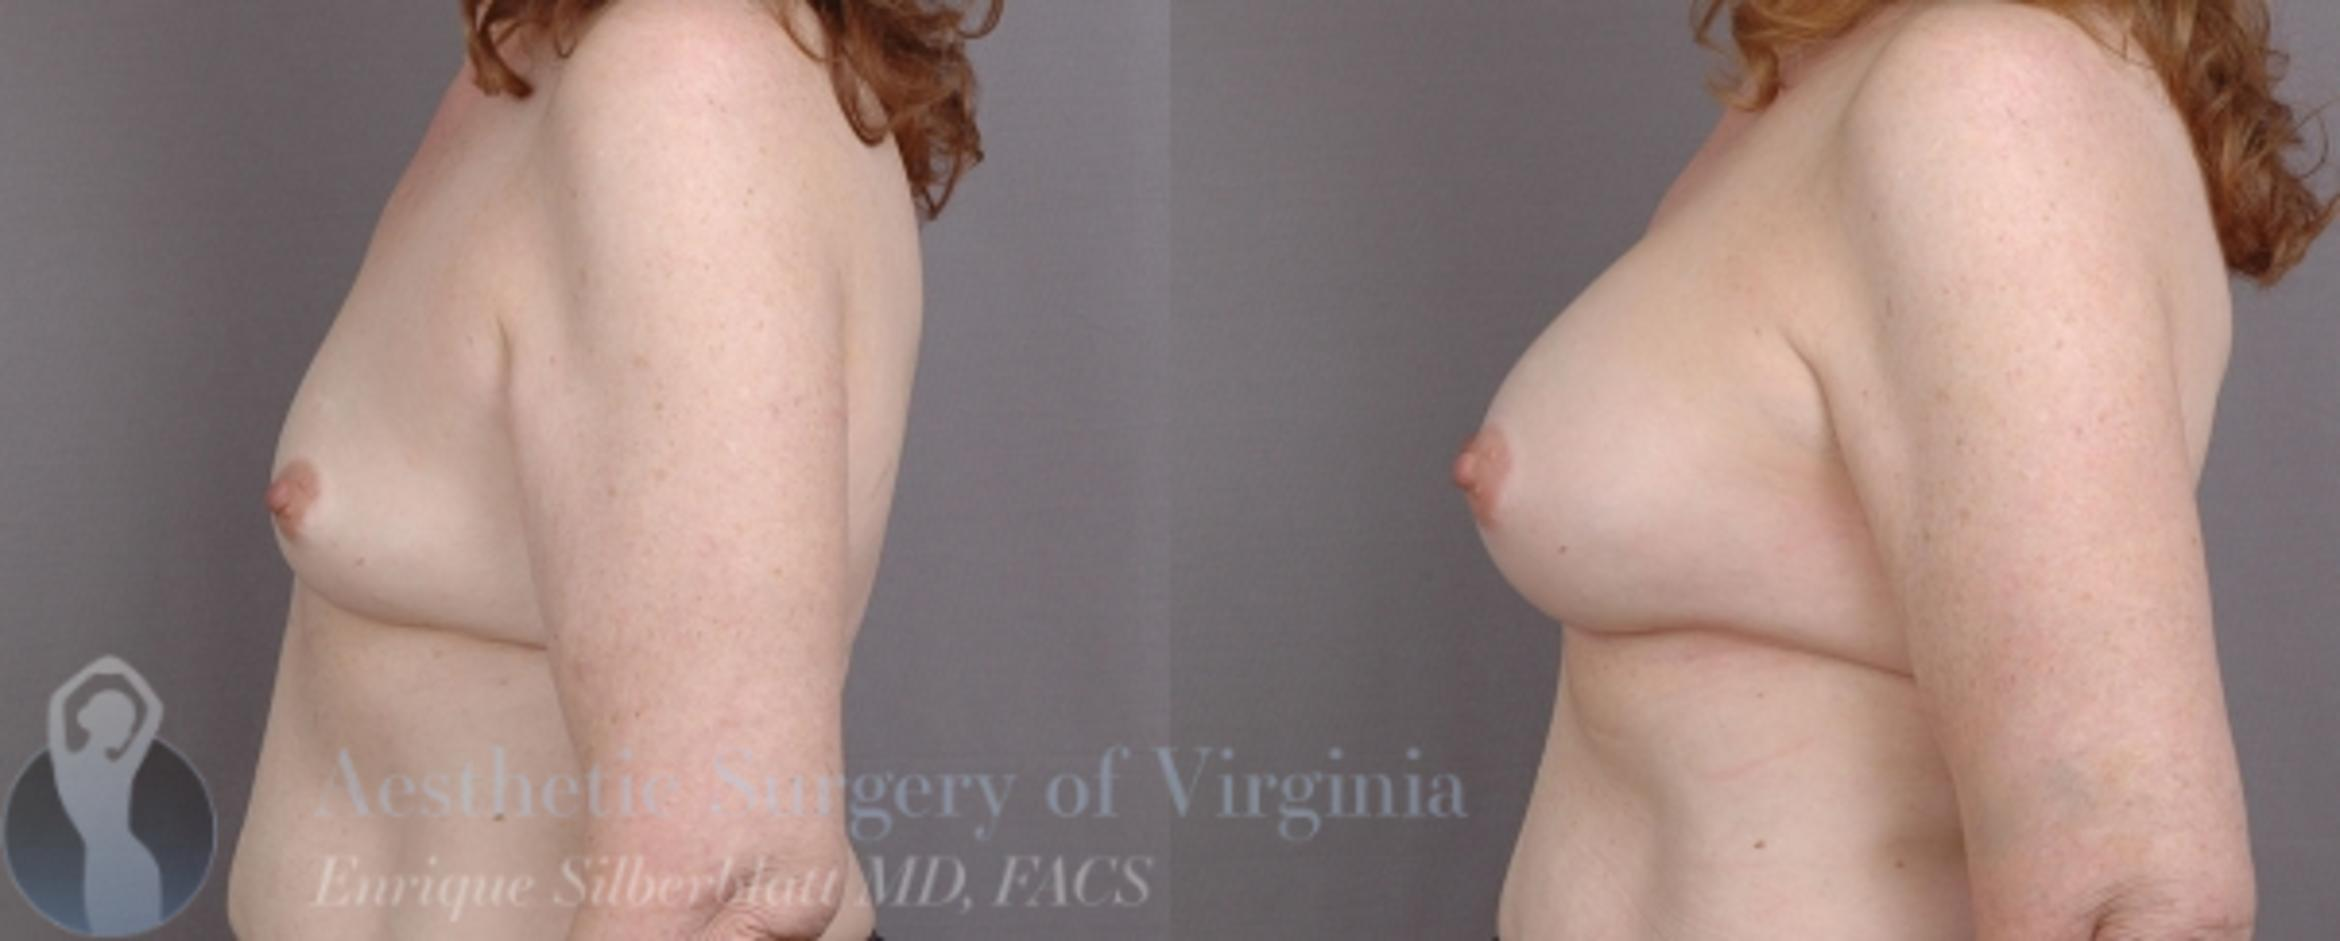 Breast Augmentation Case 16 Before & After View #4 | Roanoke, VA | Aesthetic Surgery of Virginia: Enrique Silberblatt, MD